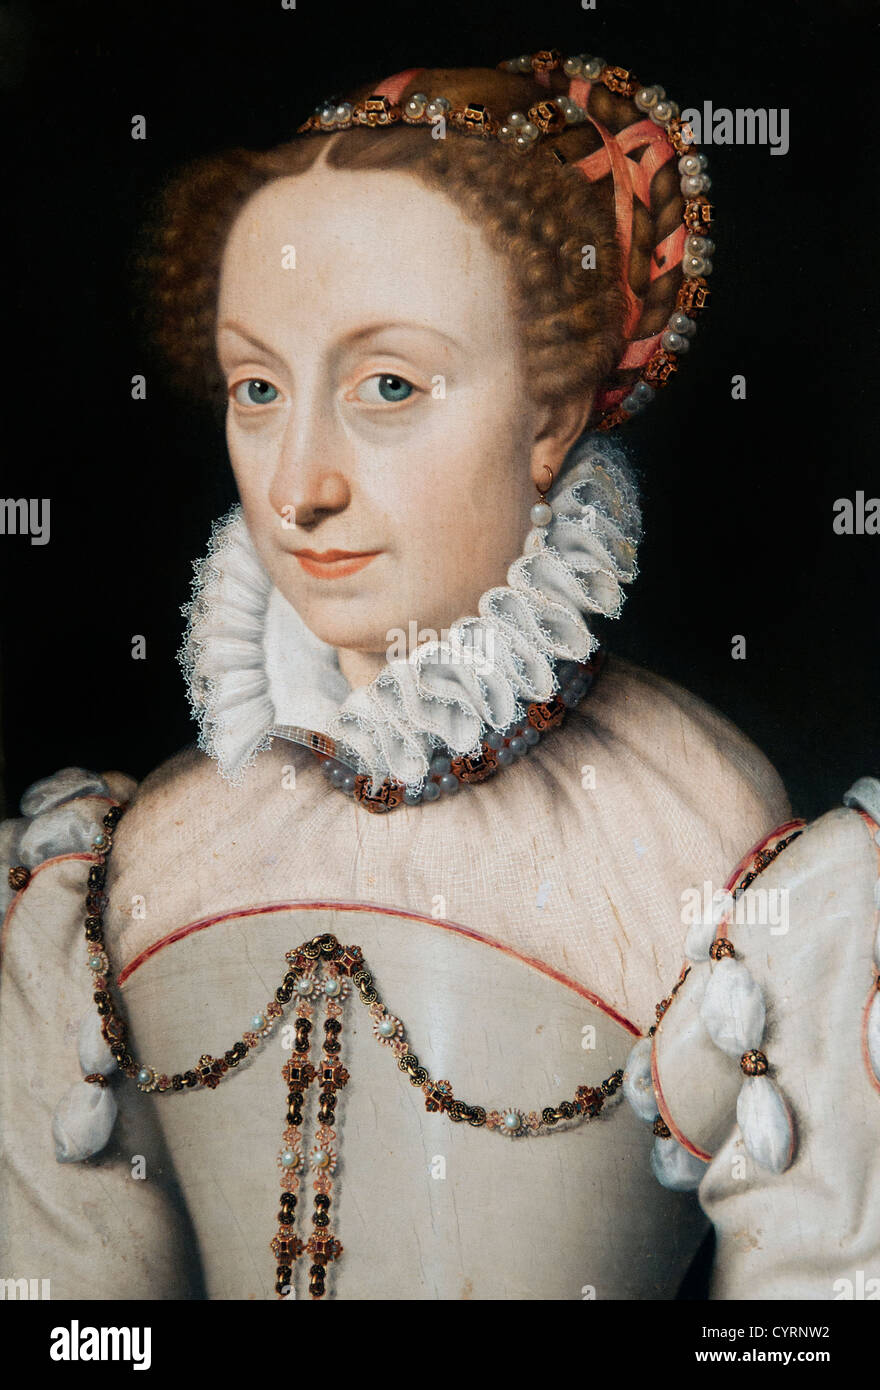 Joan - Jeanne III d'Albret 1528-72 Queen of Navarre  Spain Spanish 1570 Clouet, Francois 1510-72  France French Stock Photo